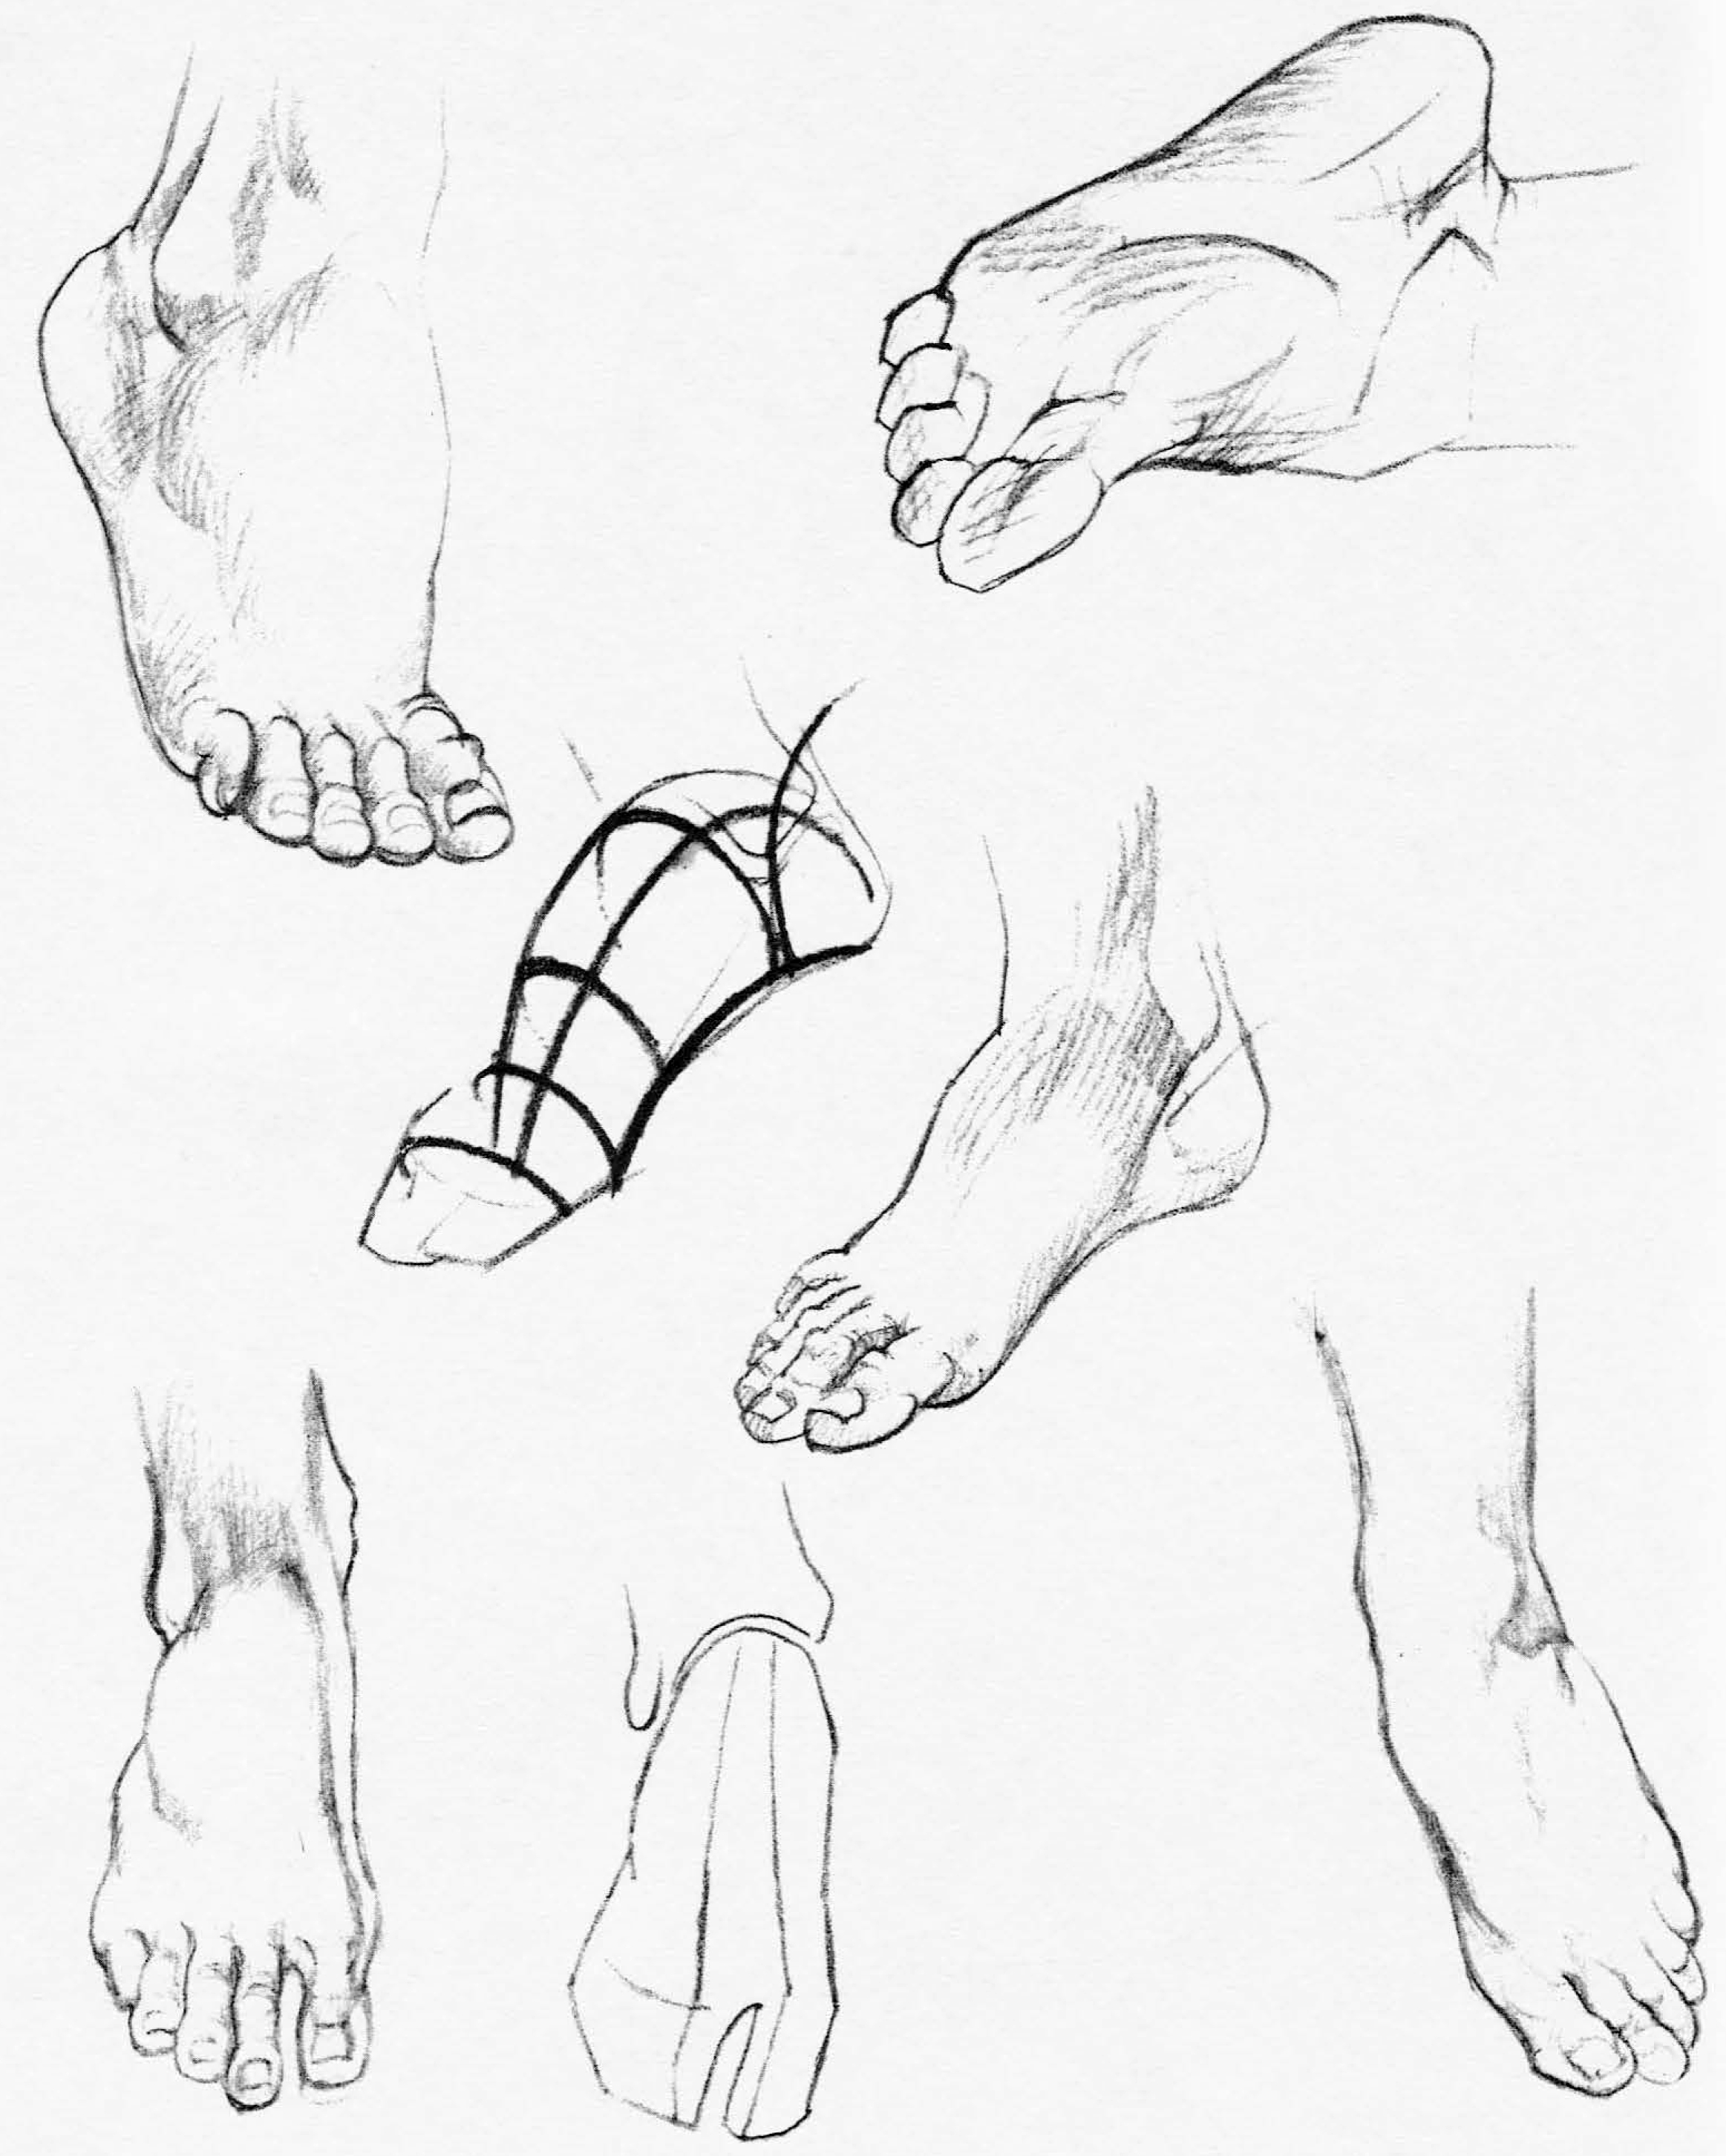 Hands And Feet Drawing at GetDrawings.com | Free for personal use ...